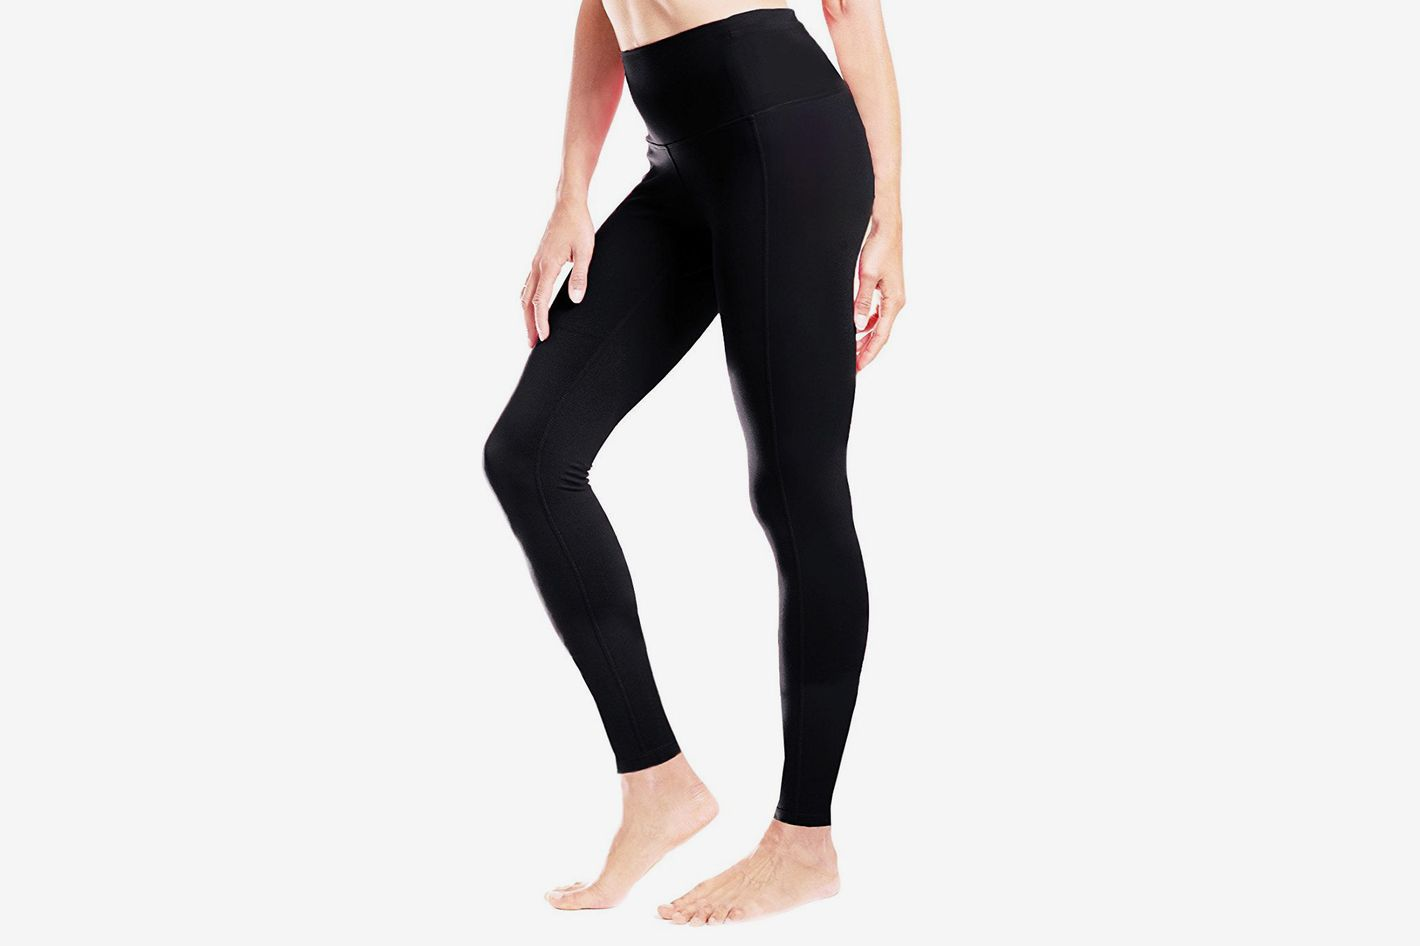 d8383293aa4f7a Yogipace Petite Length High Waisted Yoga Leggings